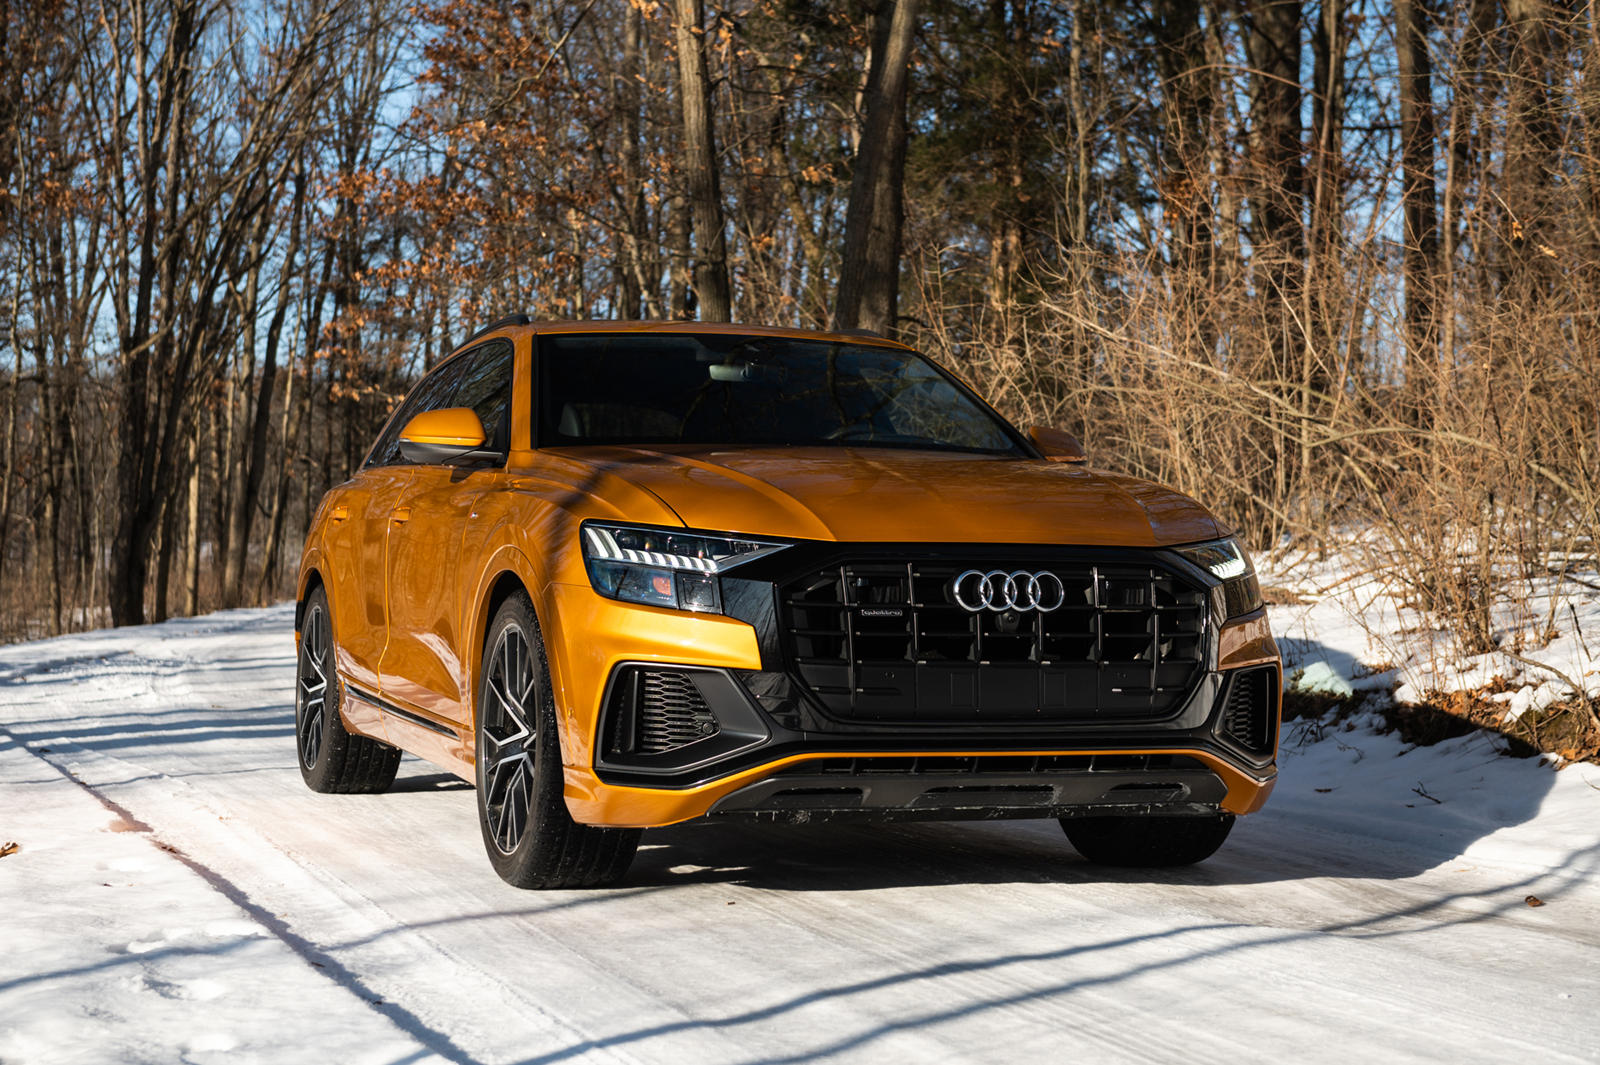 2020 Audi Q8 Review Trims Specs Price New Interior Features Exterior Design And Specifications Carbuzz